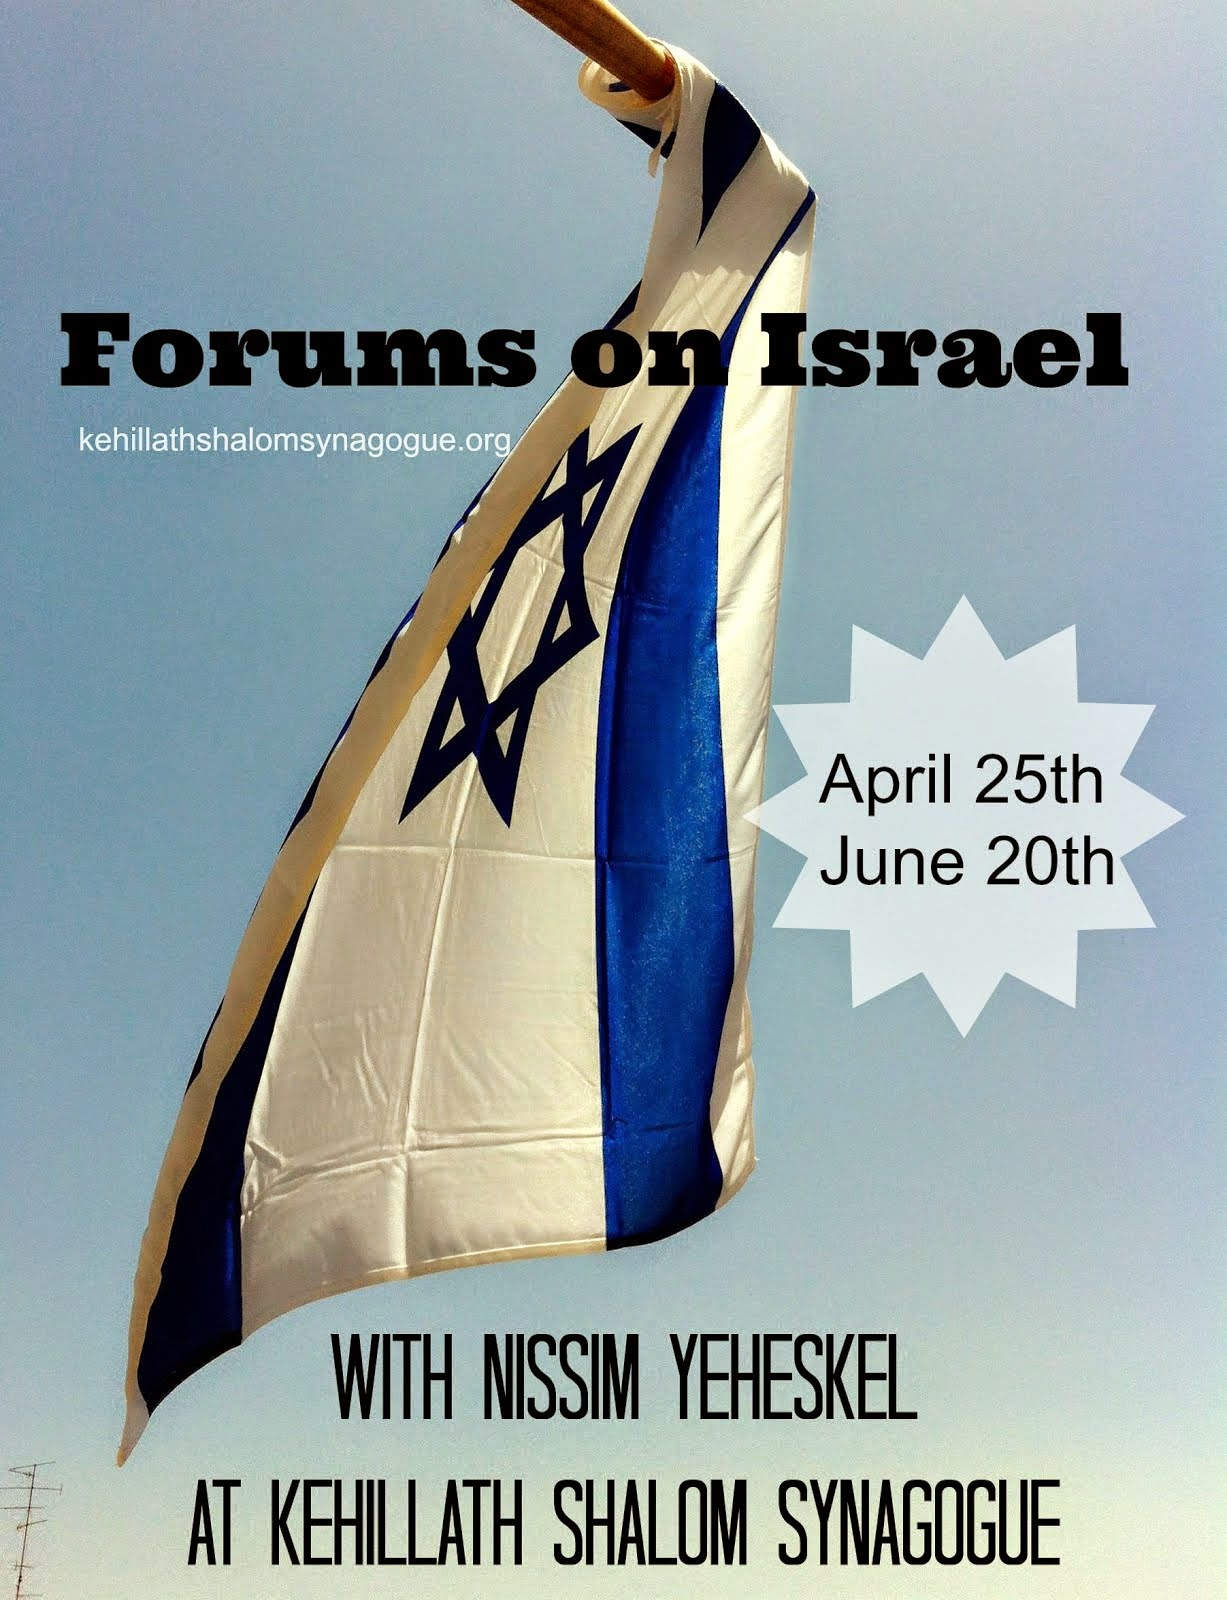 Upcoming Forums on Israel